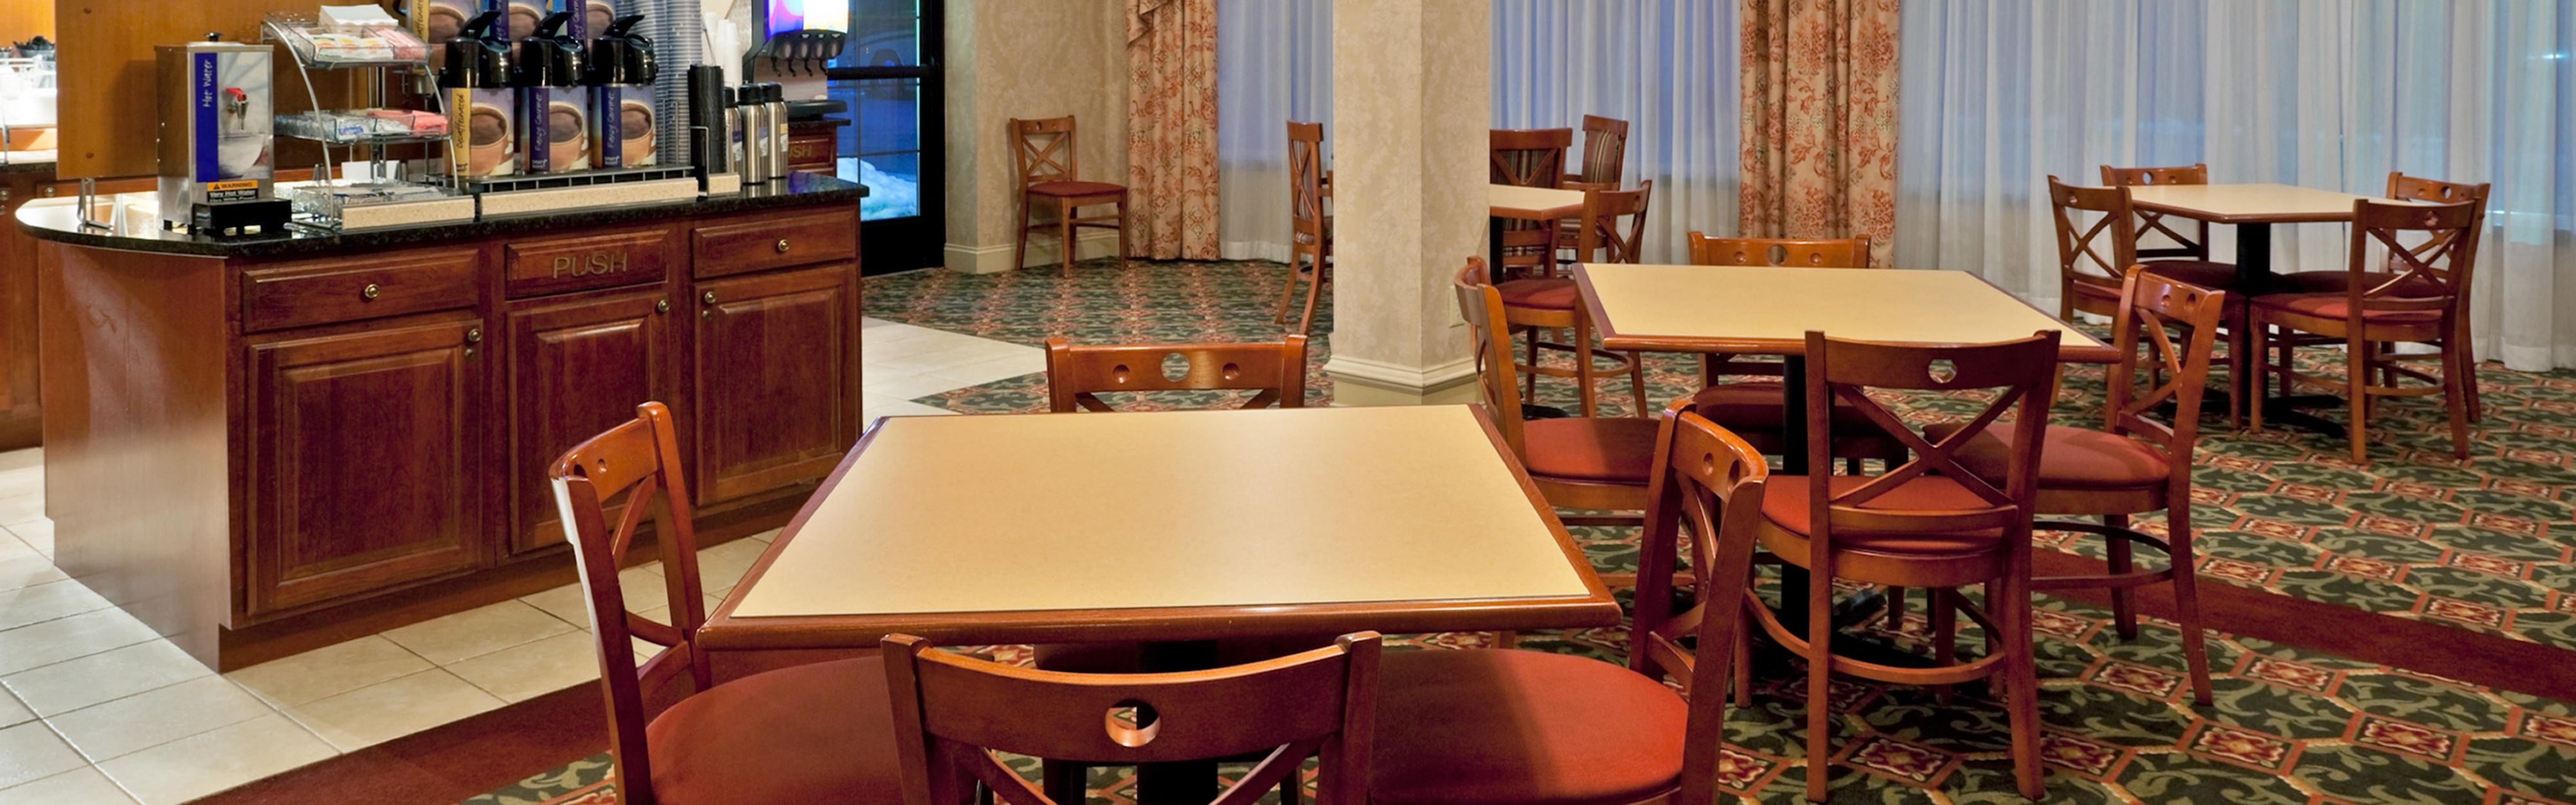 Holiday Inn Express & Suites Clifton Park image 3